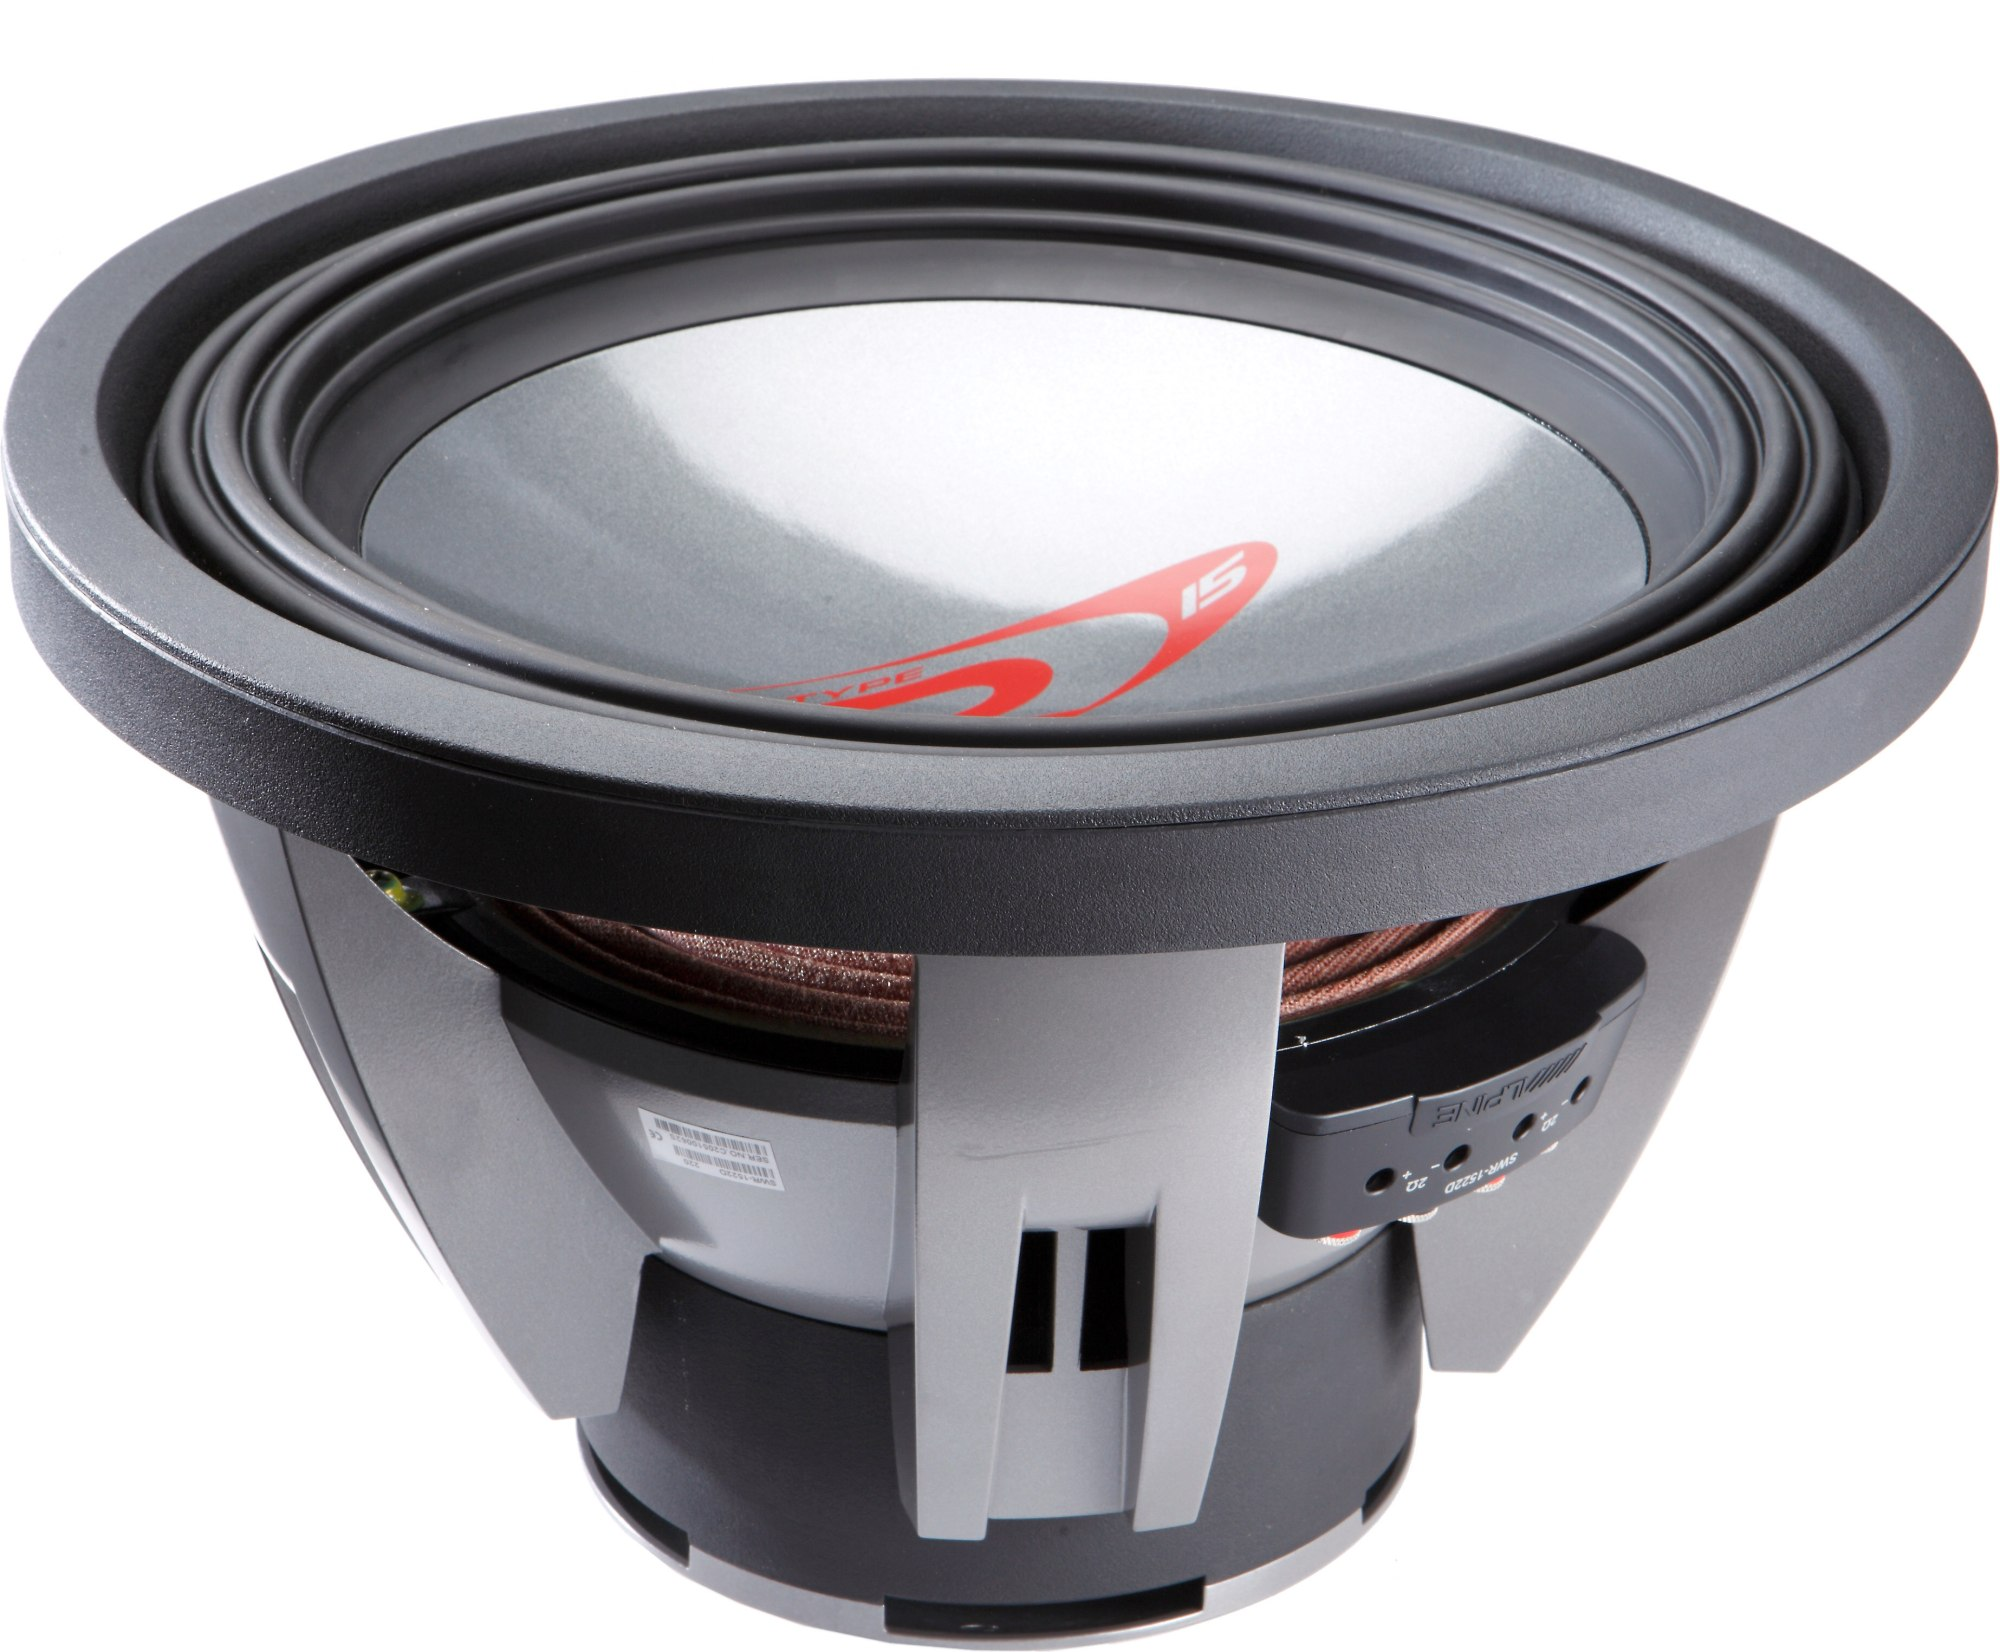 hight resolution of alpine swr 1522d type r 15 subwoofer with dual 2 ohm voice coils at crutchfield